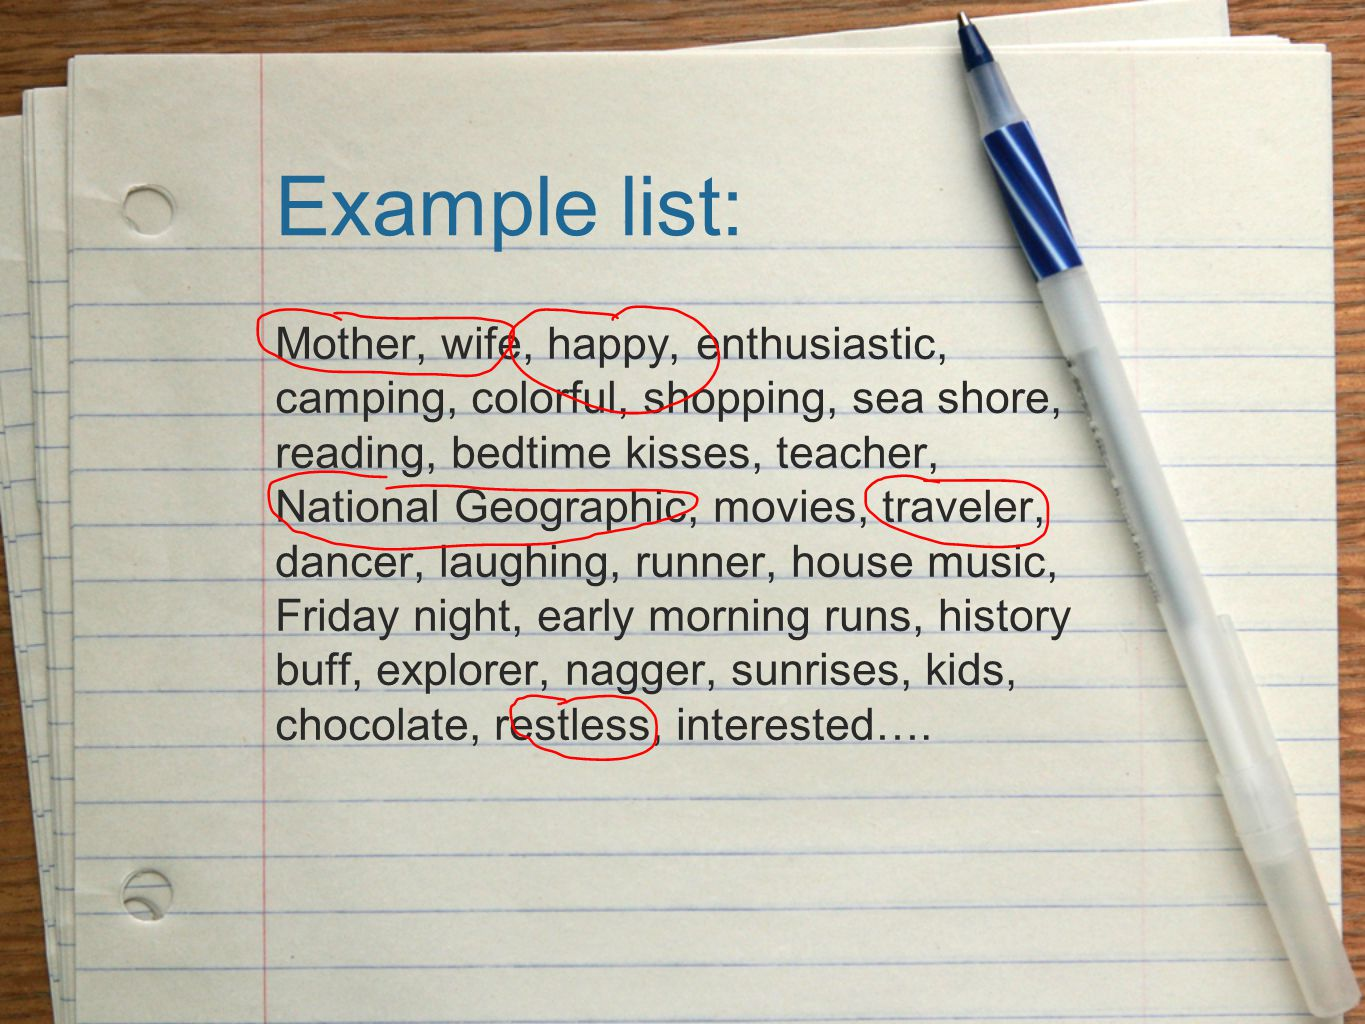 Example list: Mother, wife, happy, enthusiastic, camping, colorful, shopping, sea shore, reading, bedtime kisses, teacher, National Geographic, movies